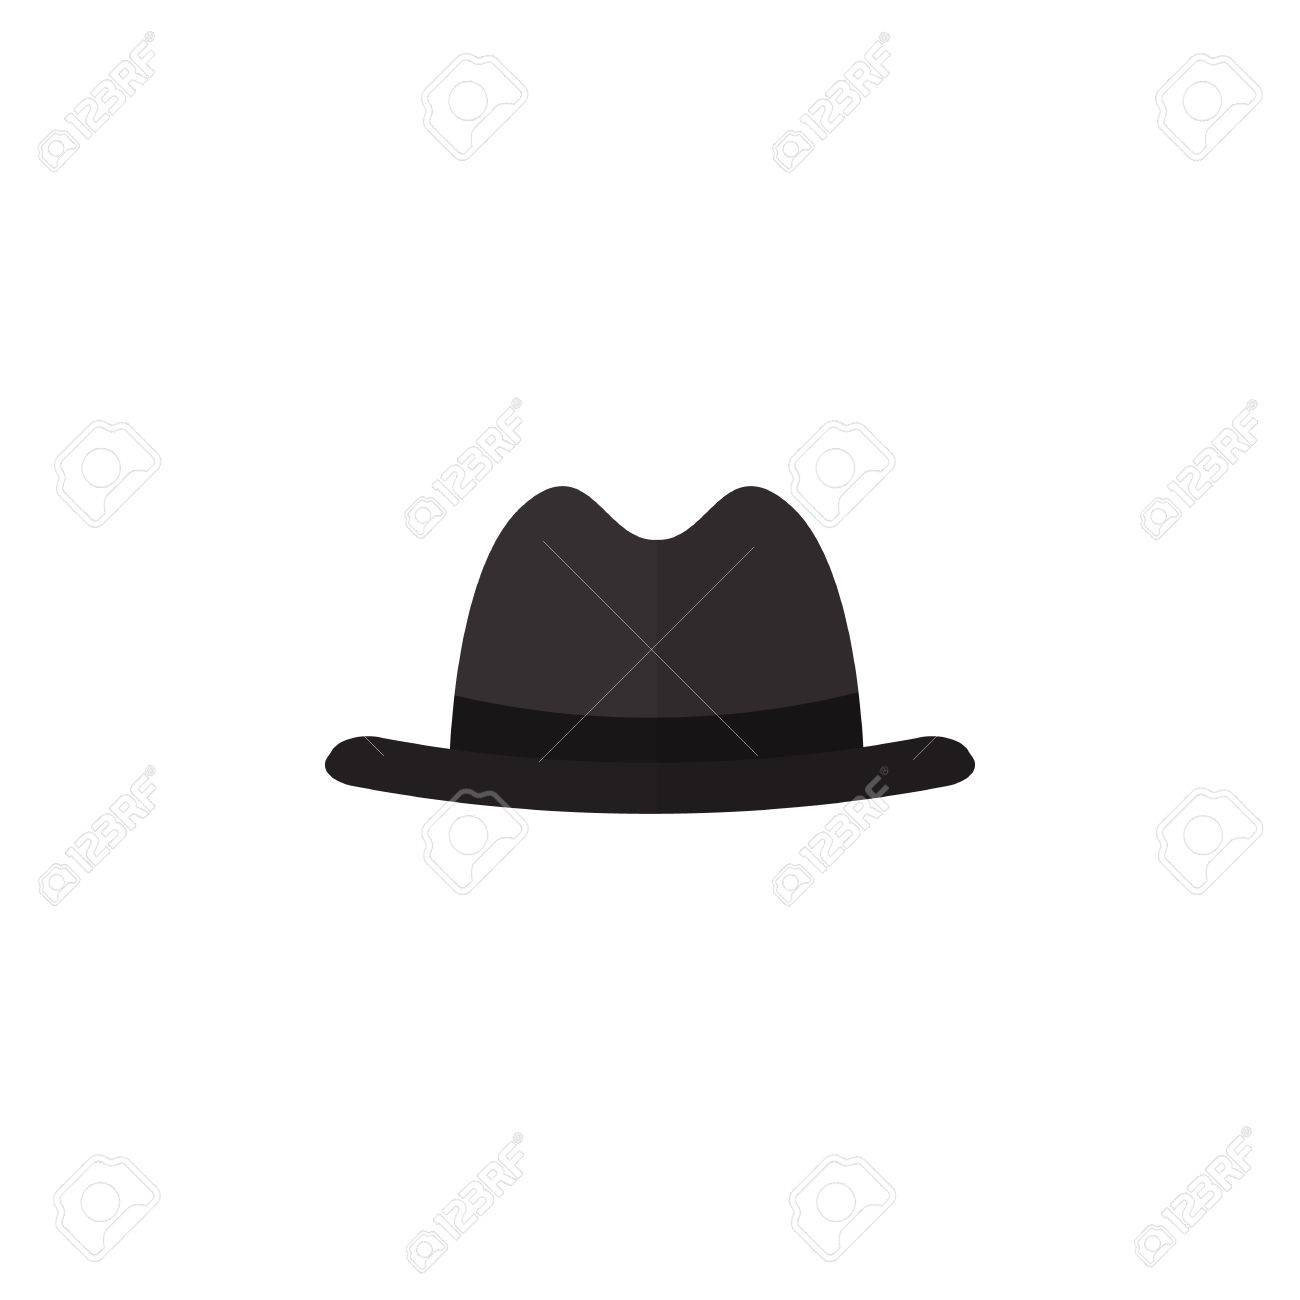 Panama Vector Element Can Be Used For Fedora d4a2575cead